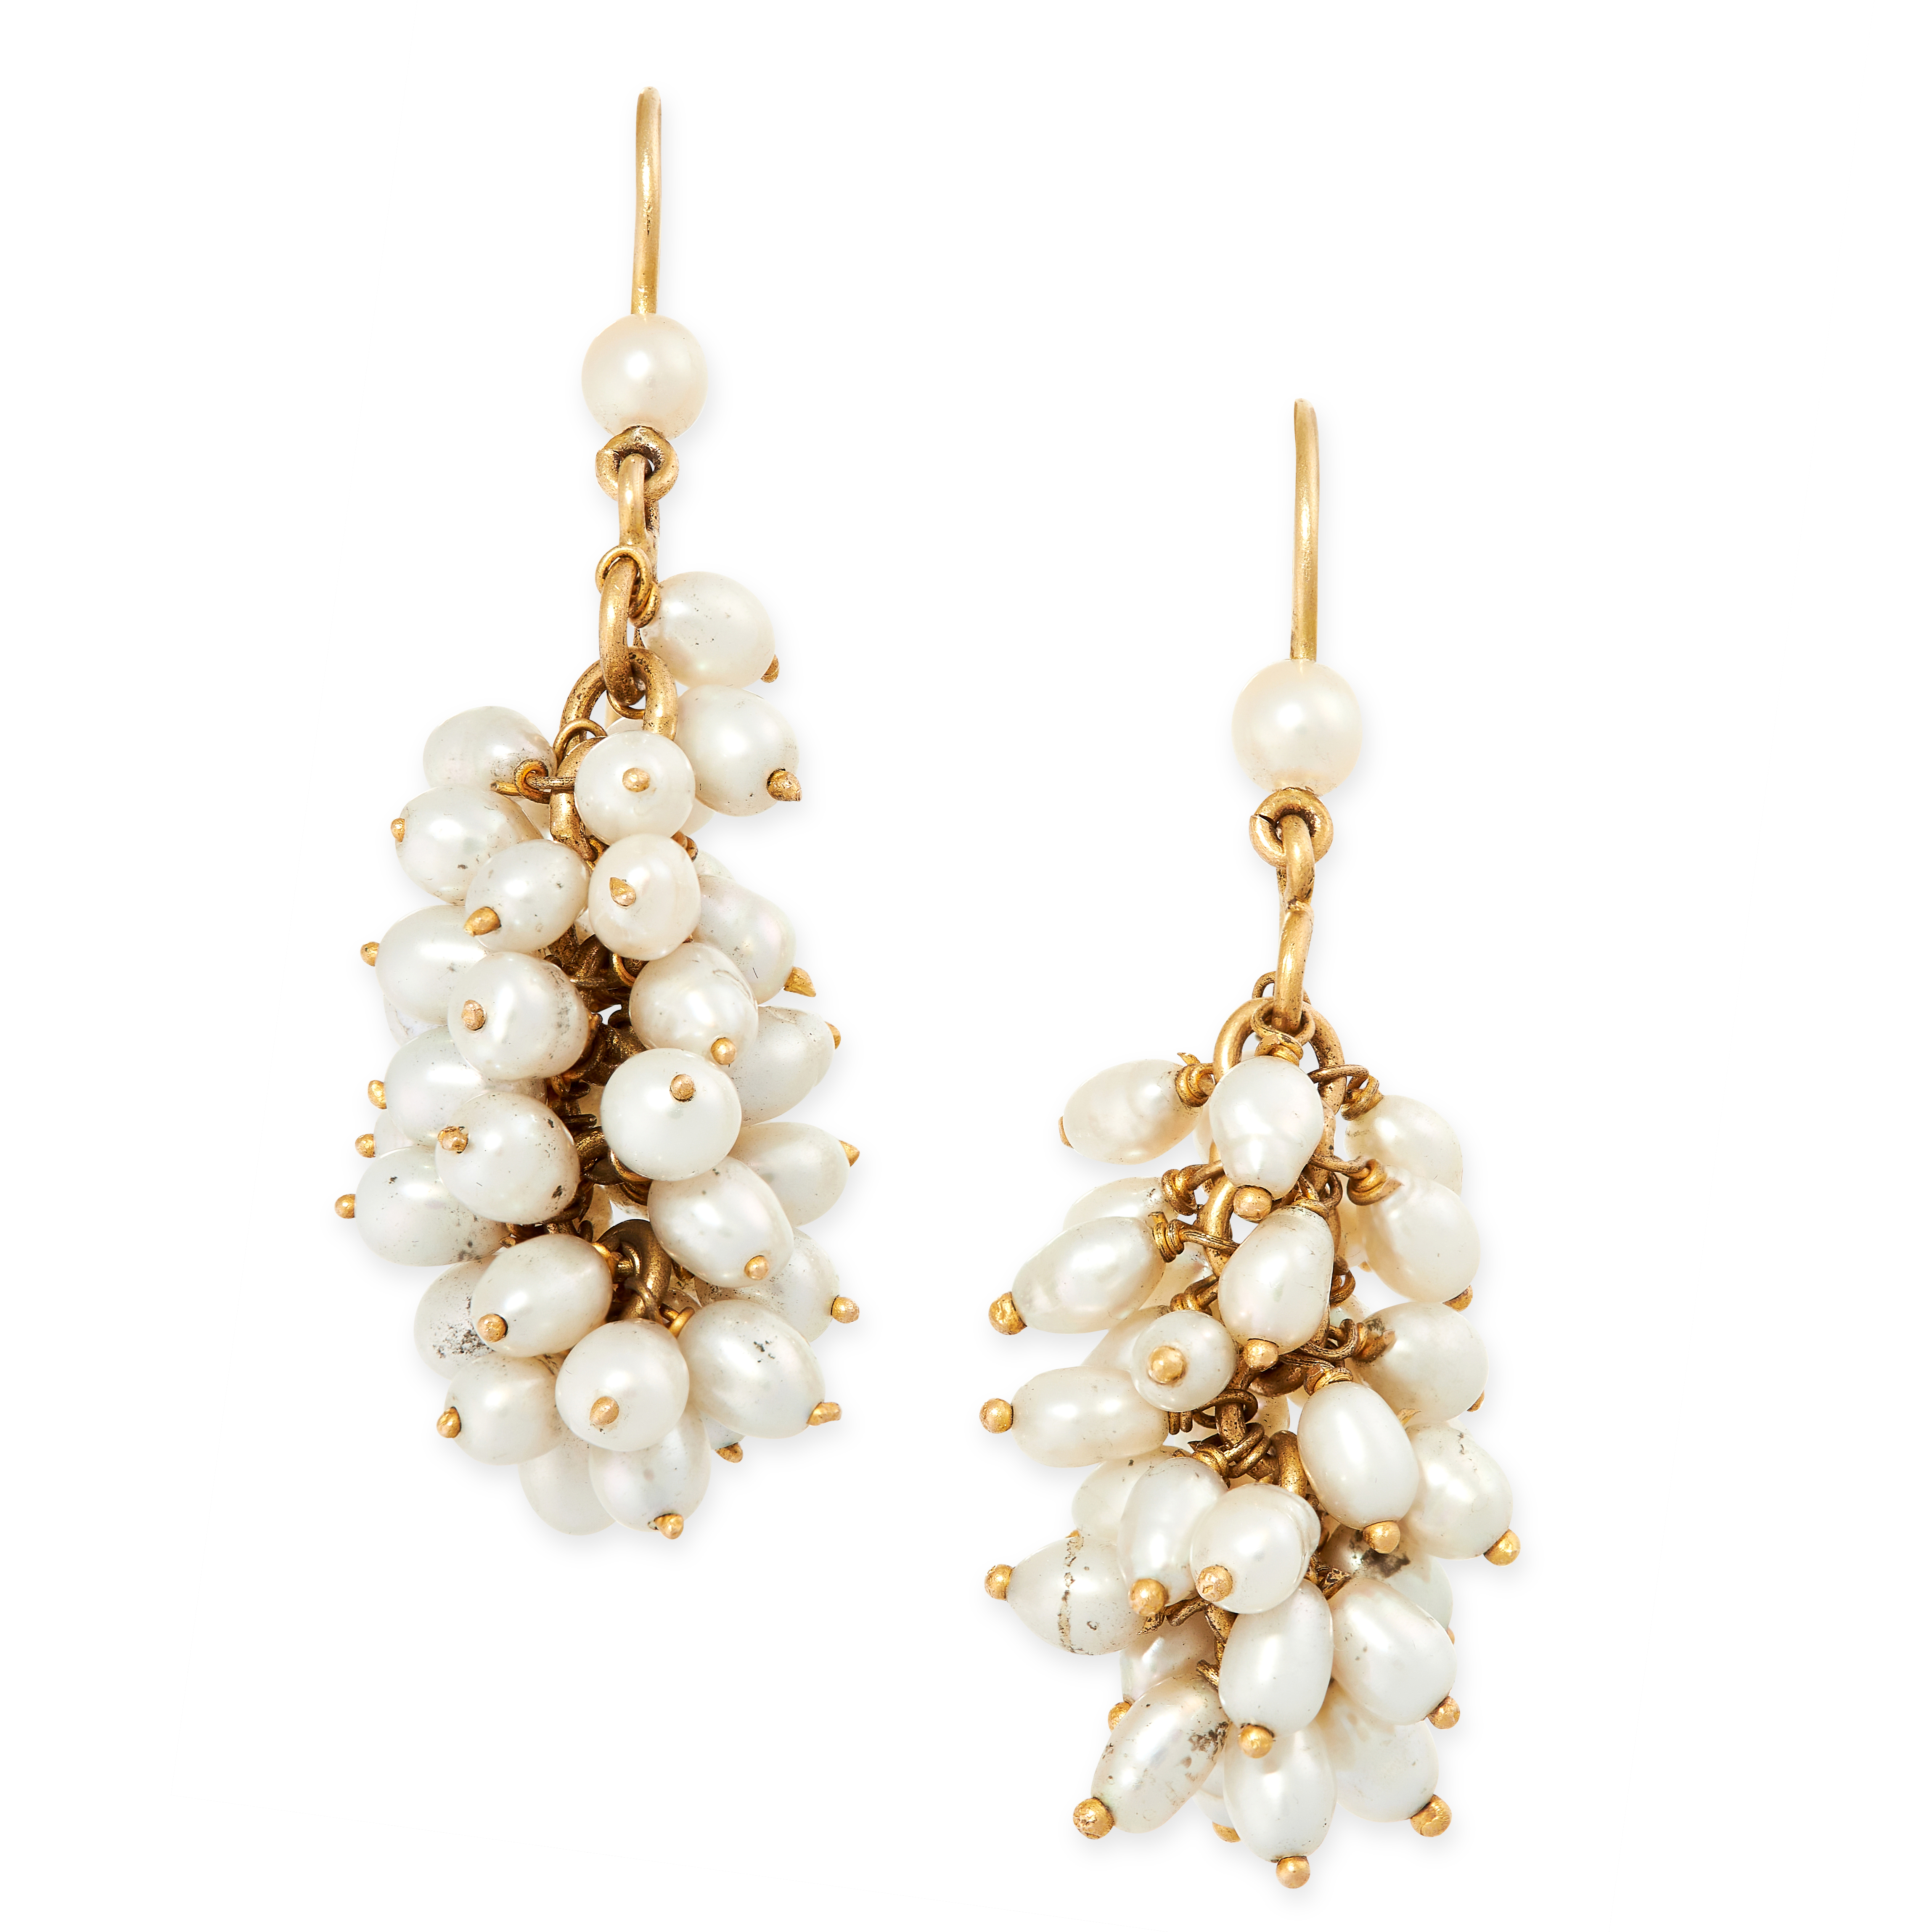 A PAIR OF PEARL EARRINGS each designed as a cluster of suspended pearls, no assay marks, 5.5cm 15.